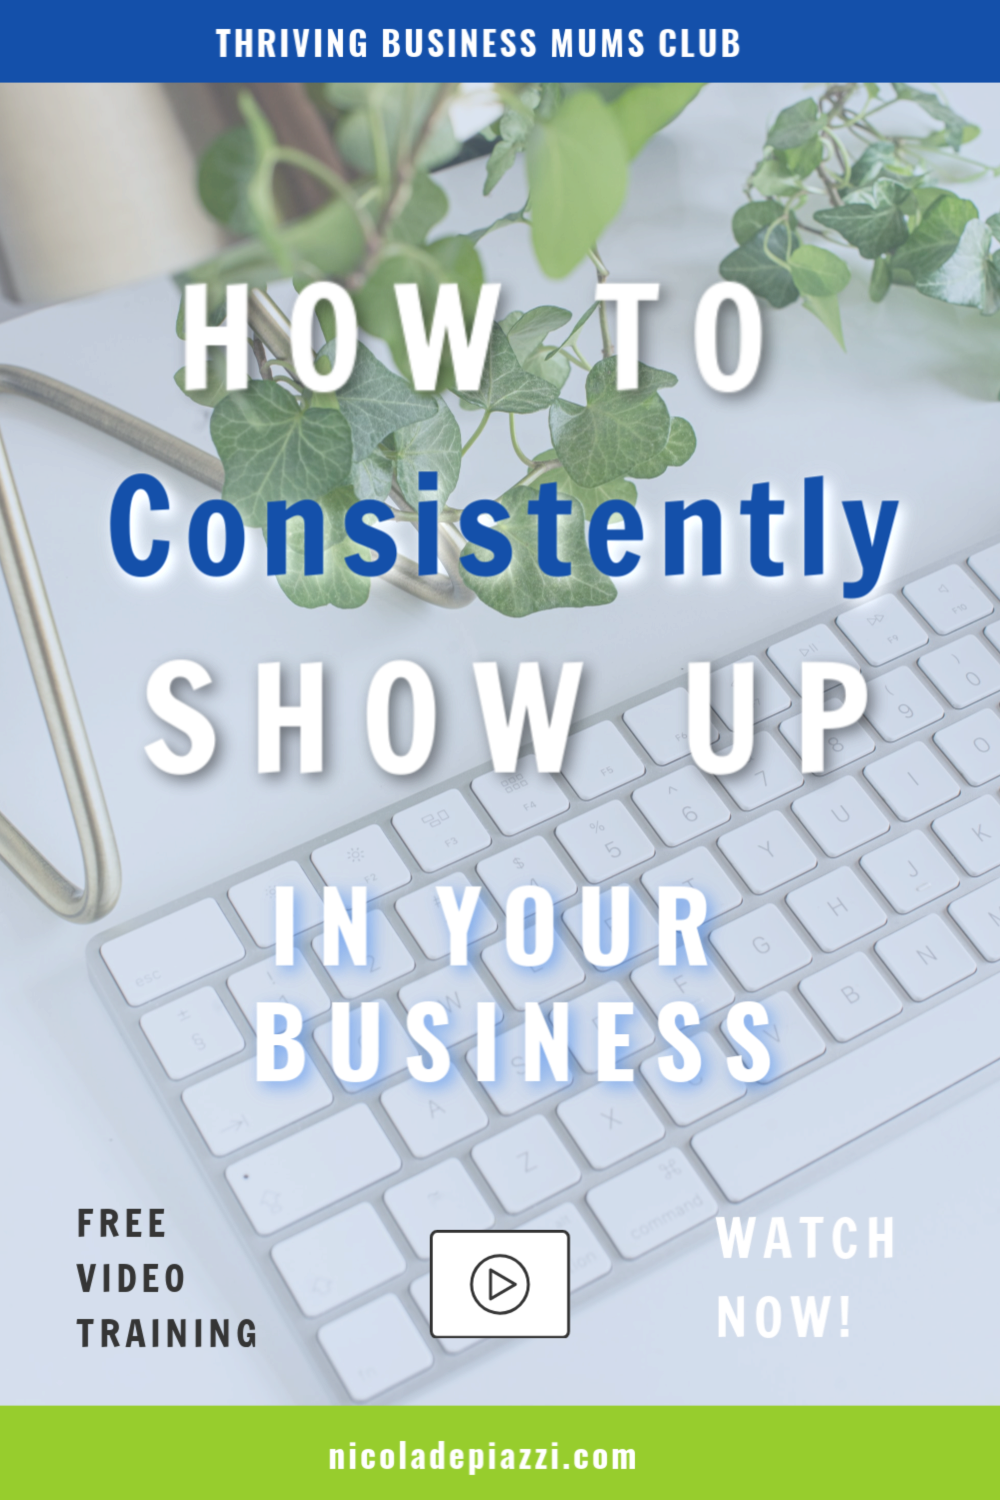 How to show up consistently in your business